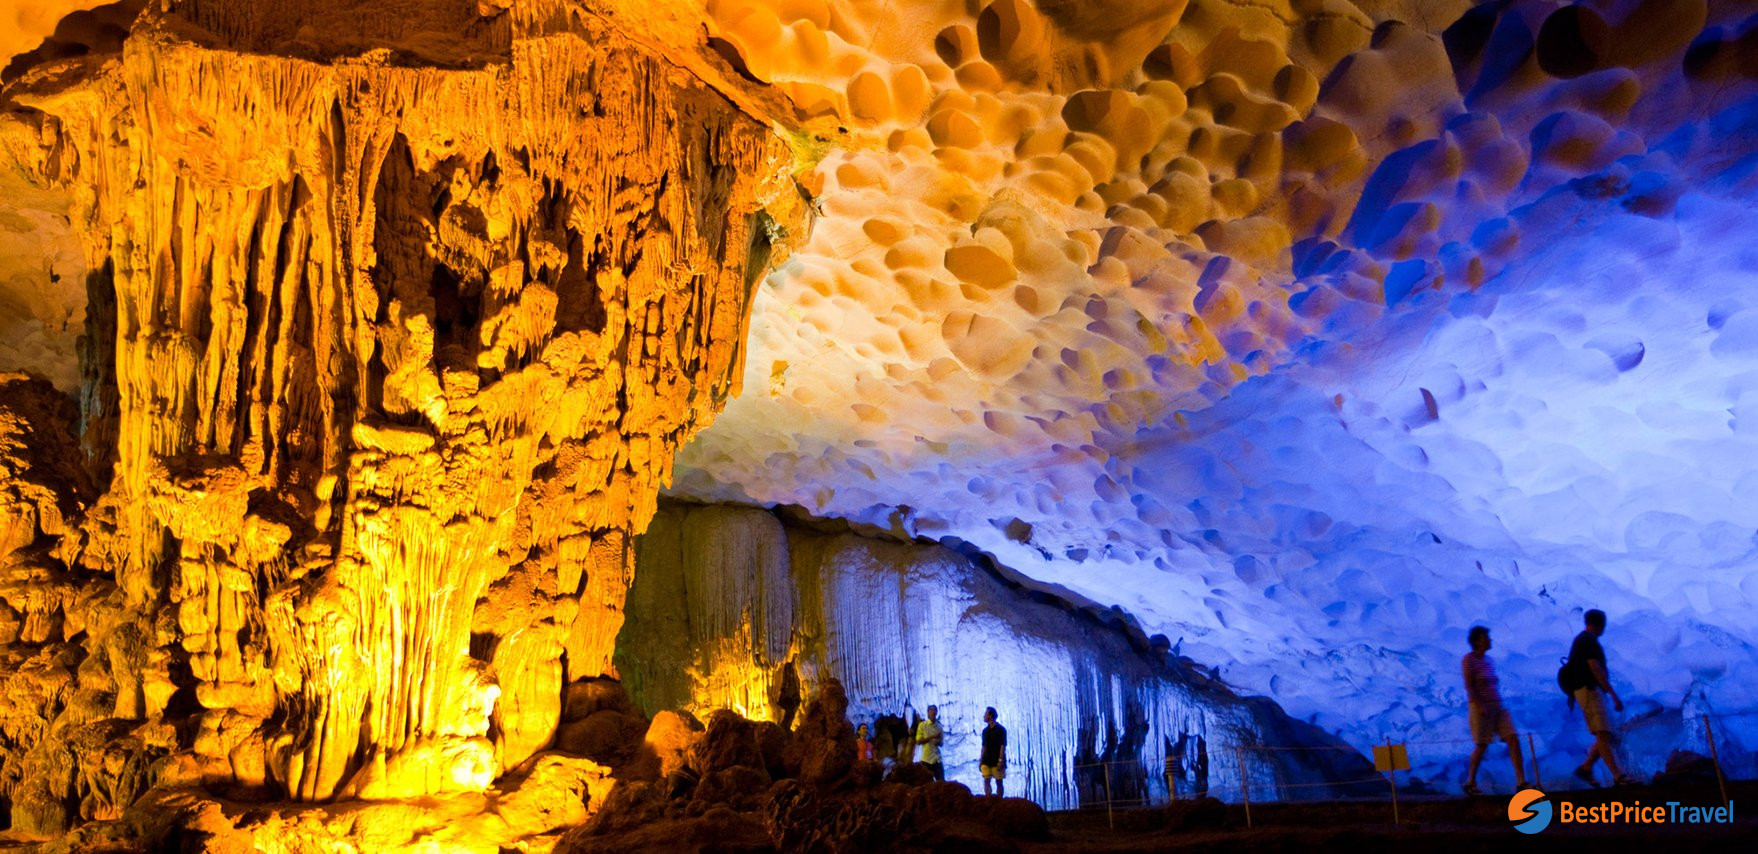 Sung Sot cave will make you amazed – as its name